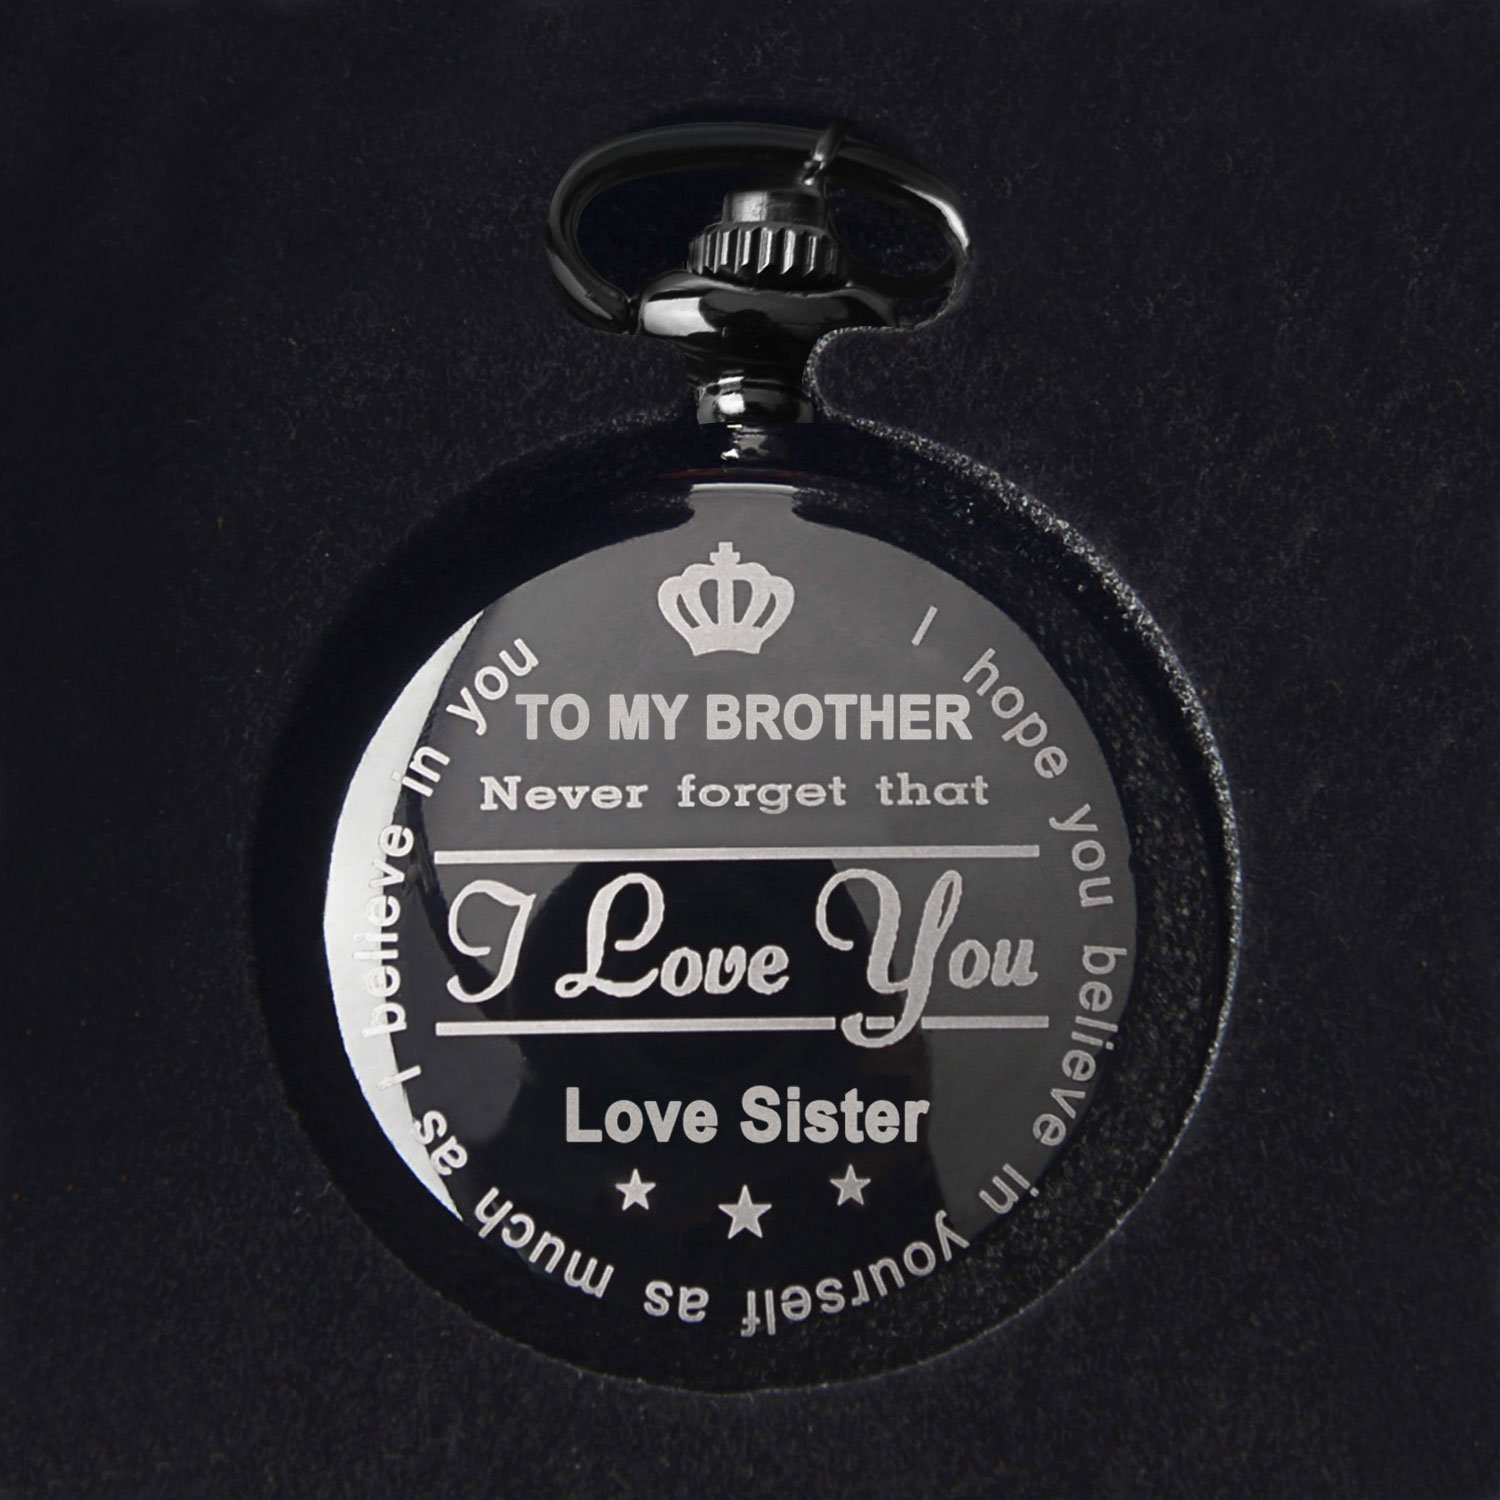 Brother Gifts for Birthday or Anniversaries Graduation Novelty Gift to Big Brother from Brother or Sister Engraved Pocket Watch with Gift Box for Men (Love Sister Black) by Samuel (Image #5)